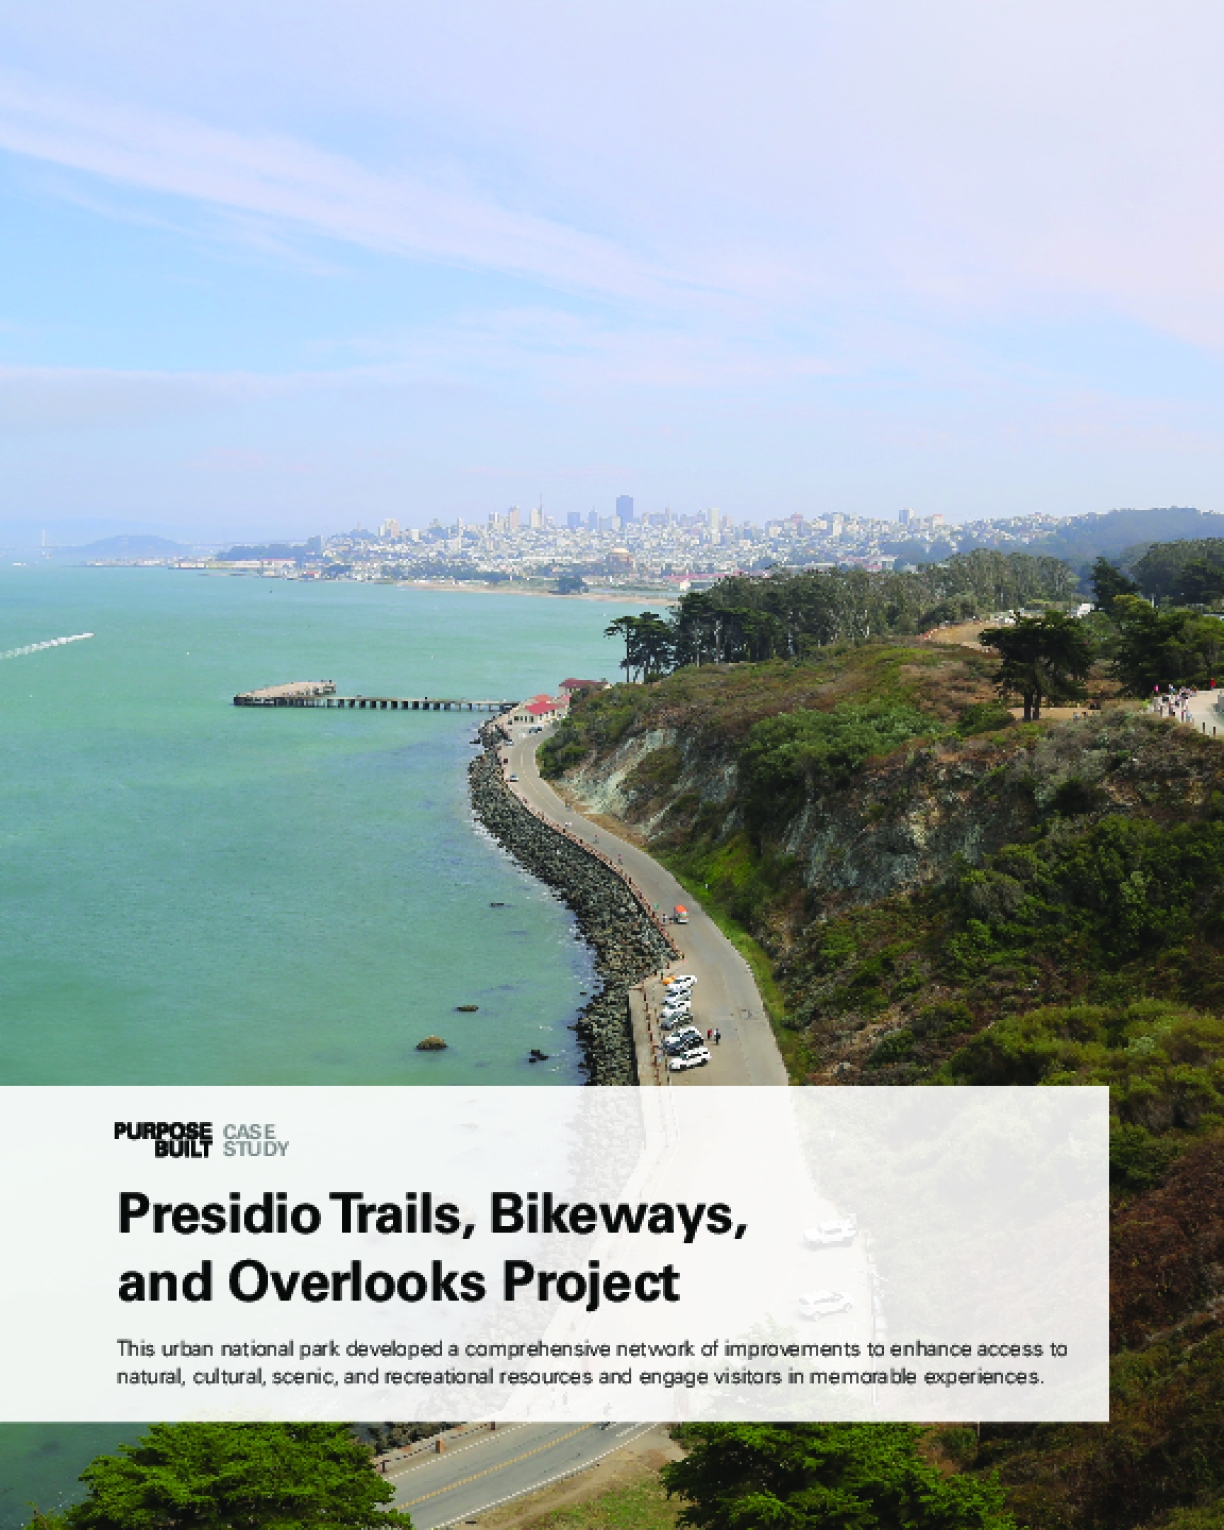 Purpose Built Case Study: Presidio Trails, Bikeways, and Overlooks Project